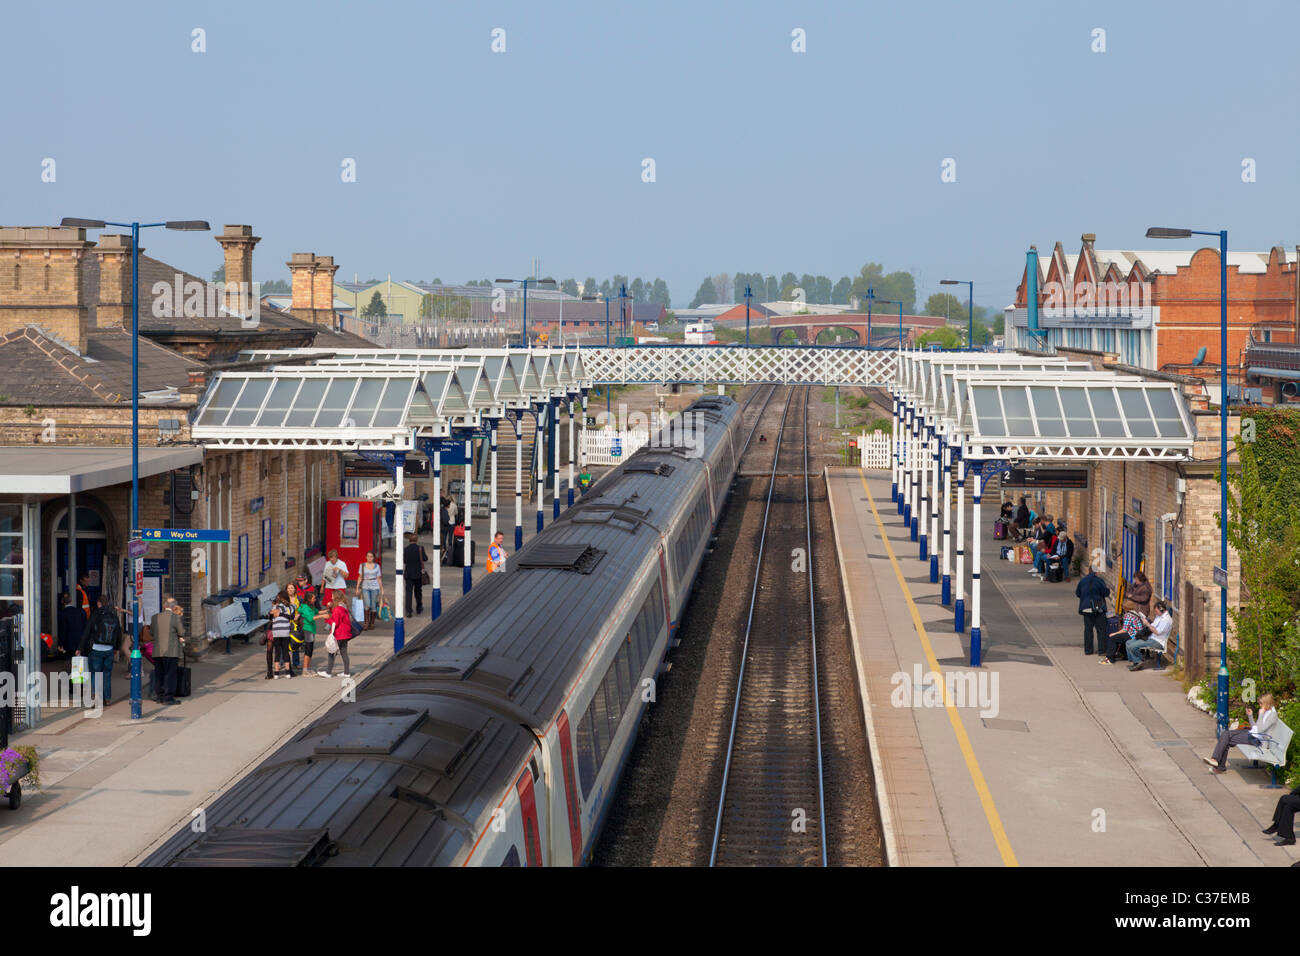 Loughborough Railway Station home of the Great Central Railway Leicestershire England GB UK EU Europe - Stock Image